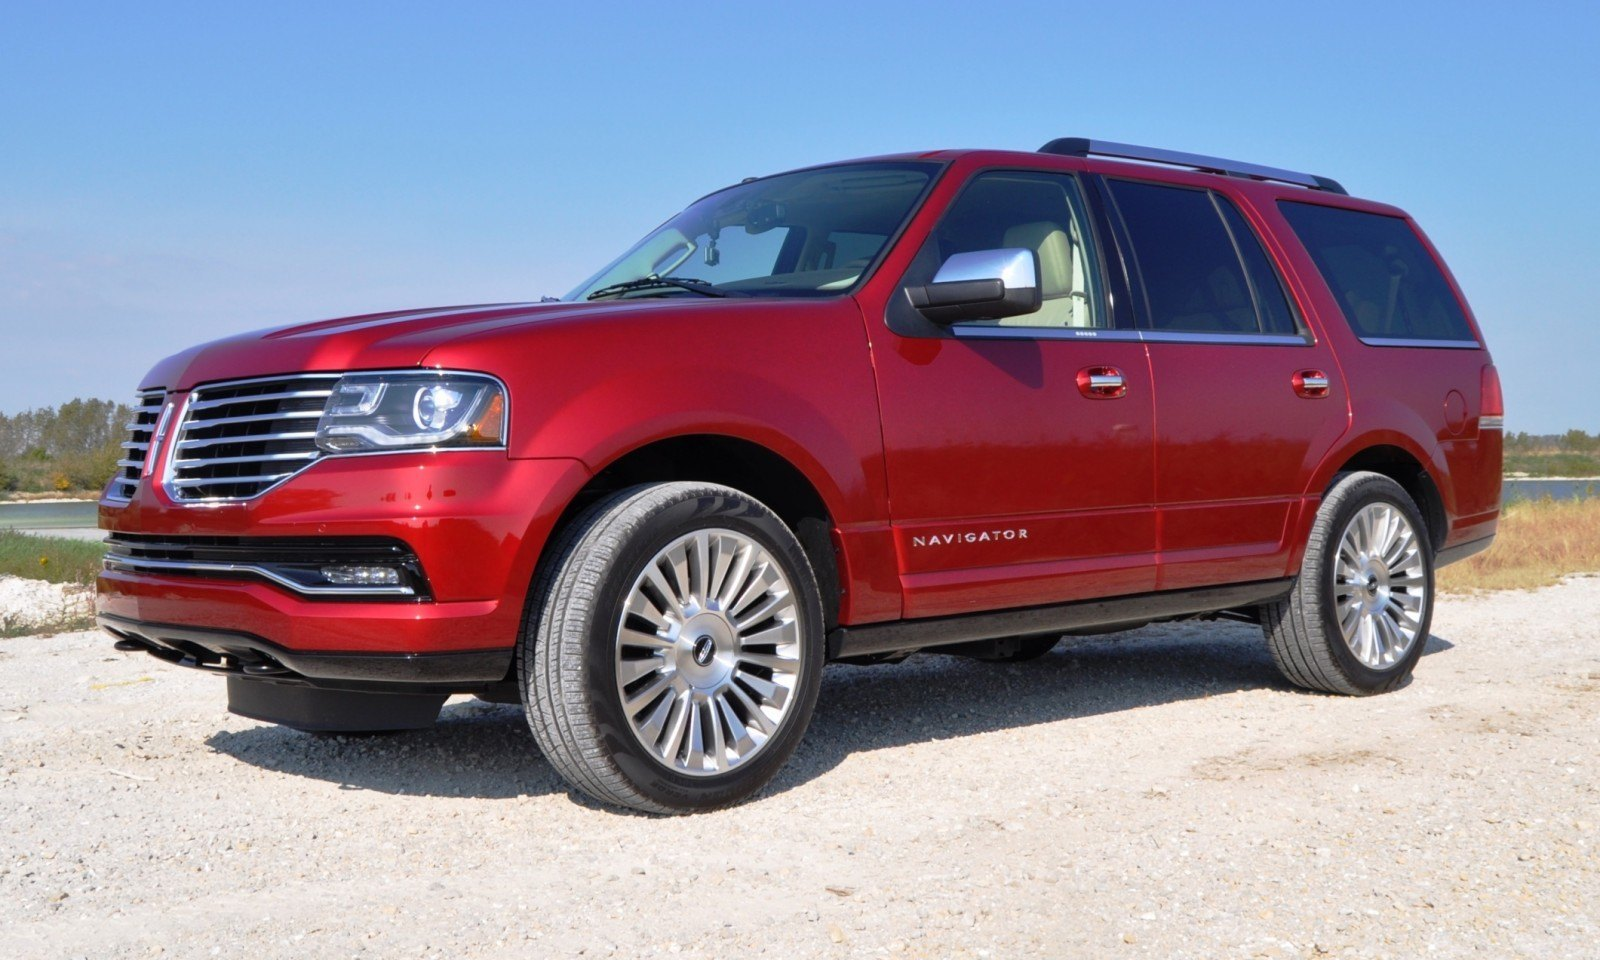 Road Test Review - 2015 Lincoln Navigator Is Totally Transformed By MR Shocks and EcoBoost 3